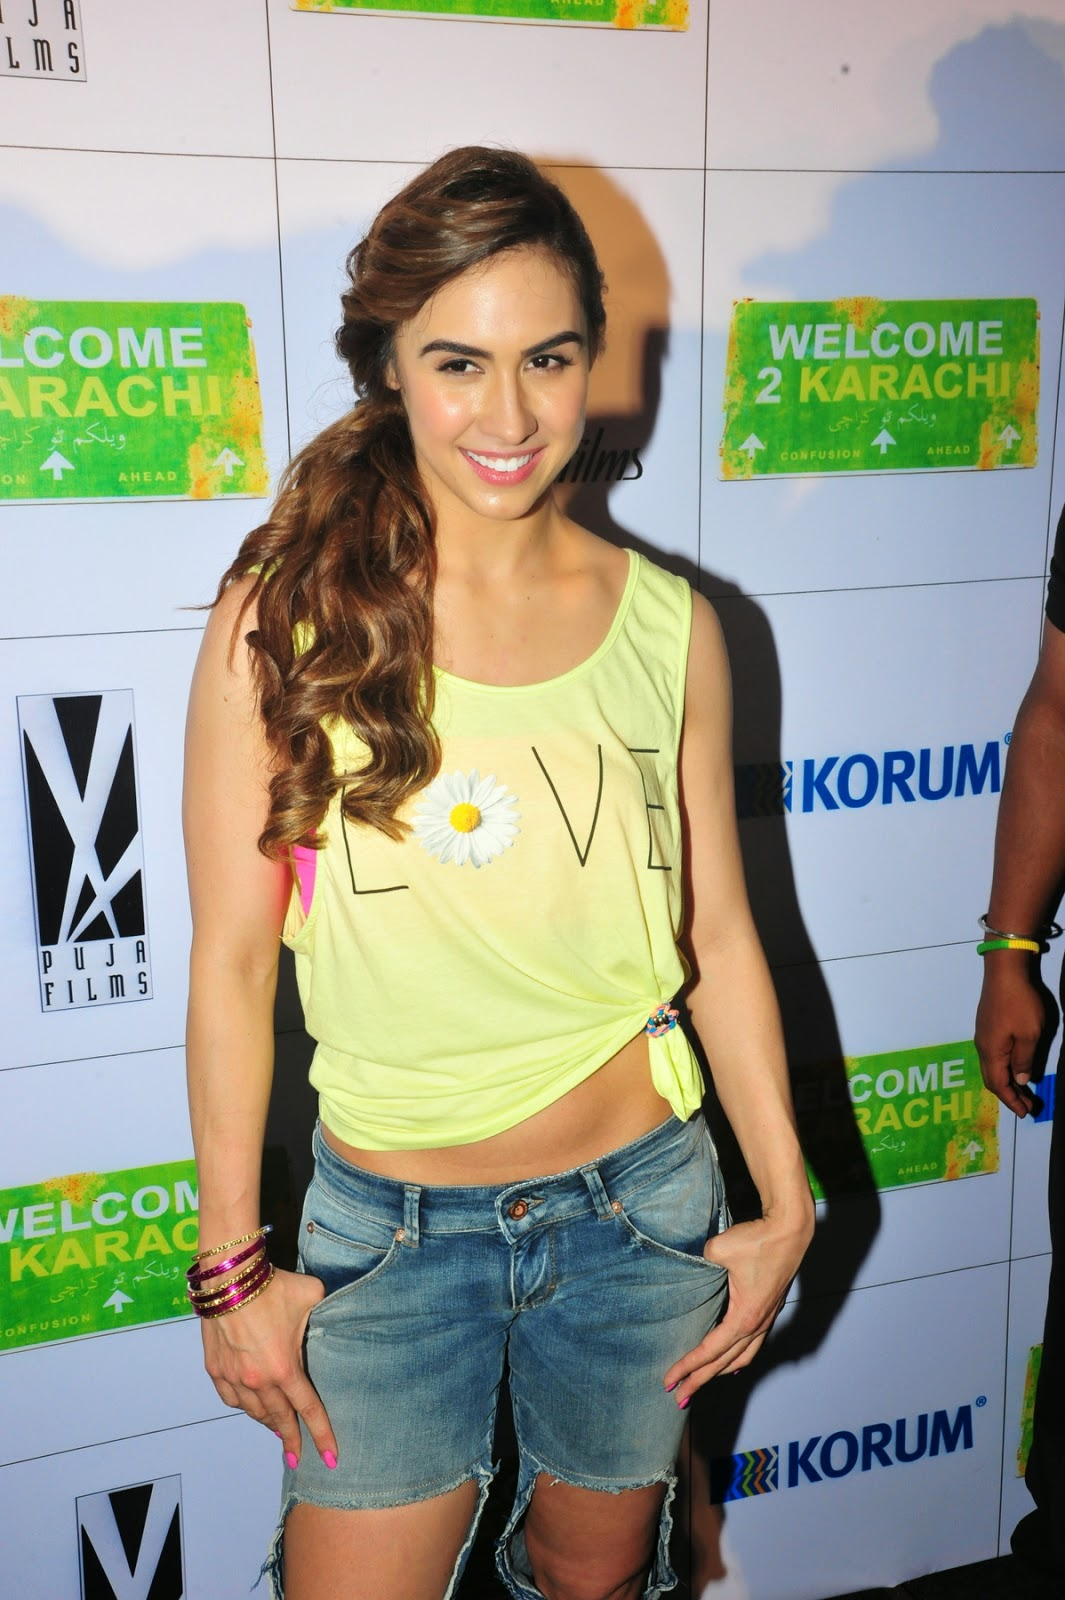 Lauren gottlieb porn thought differently